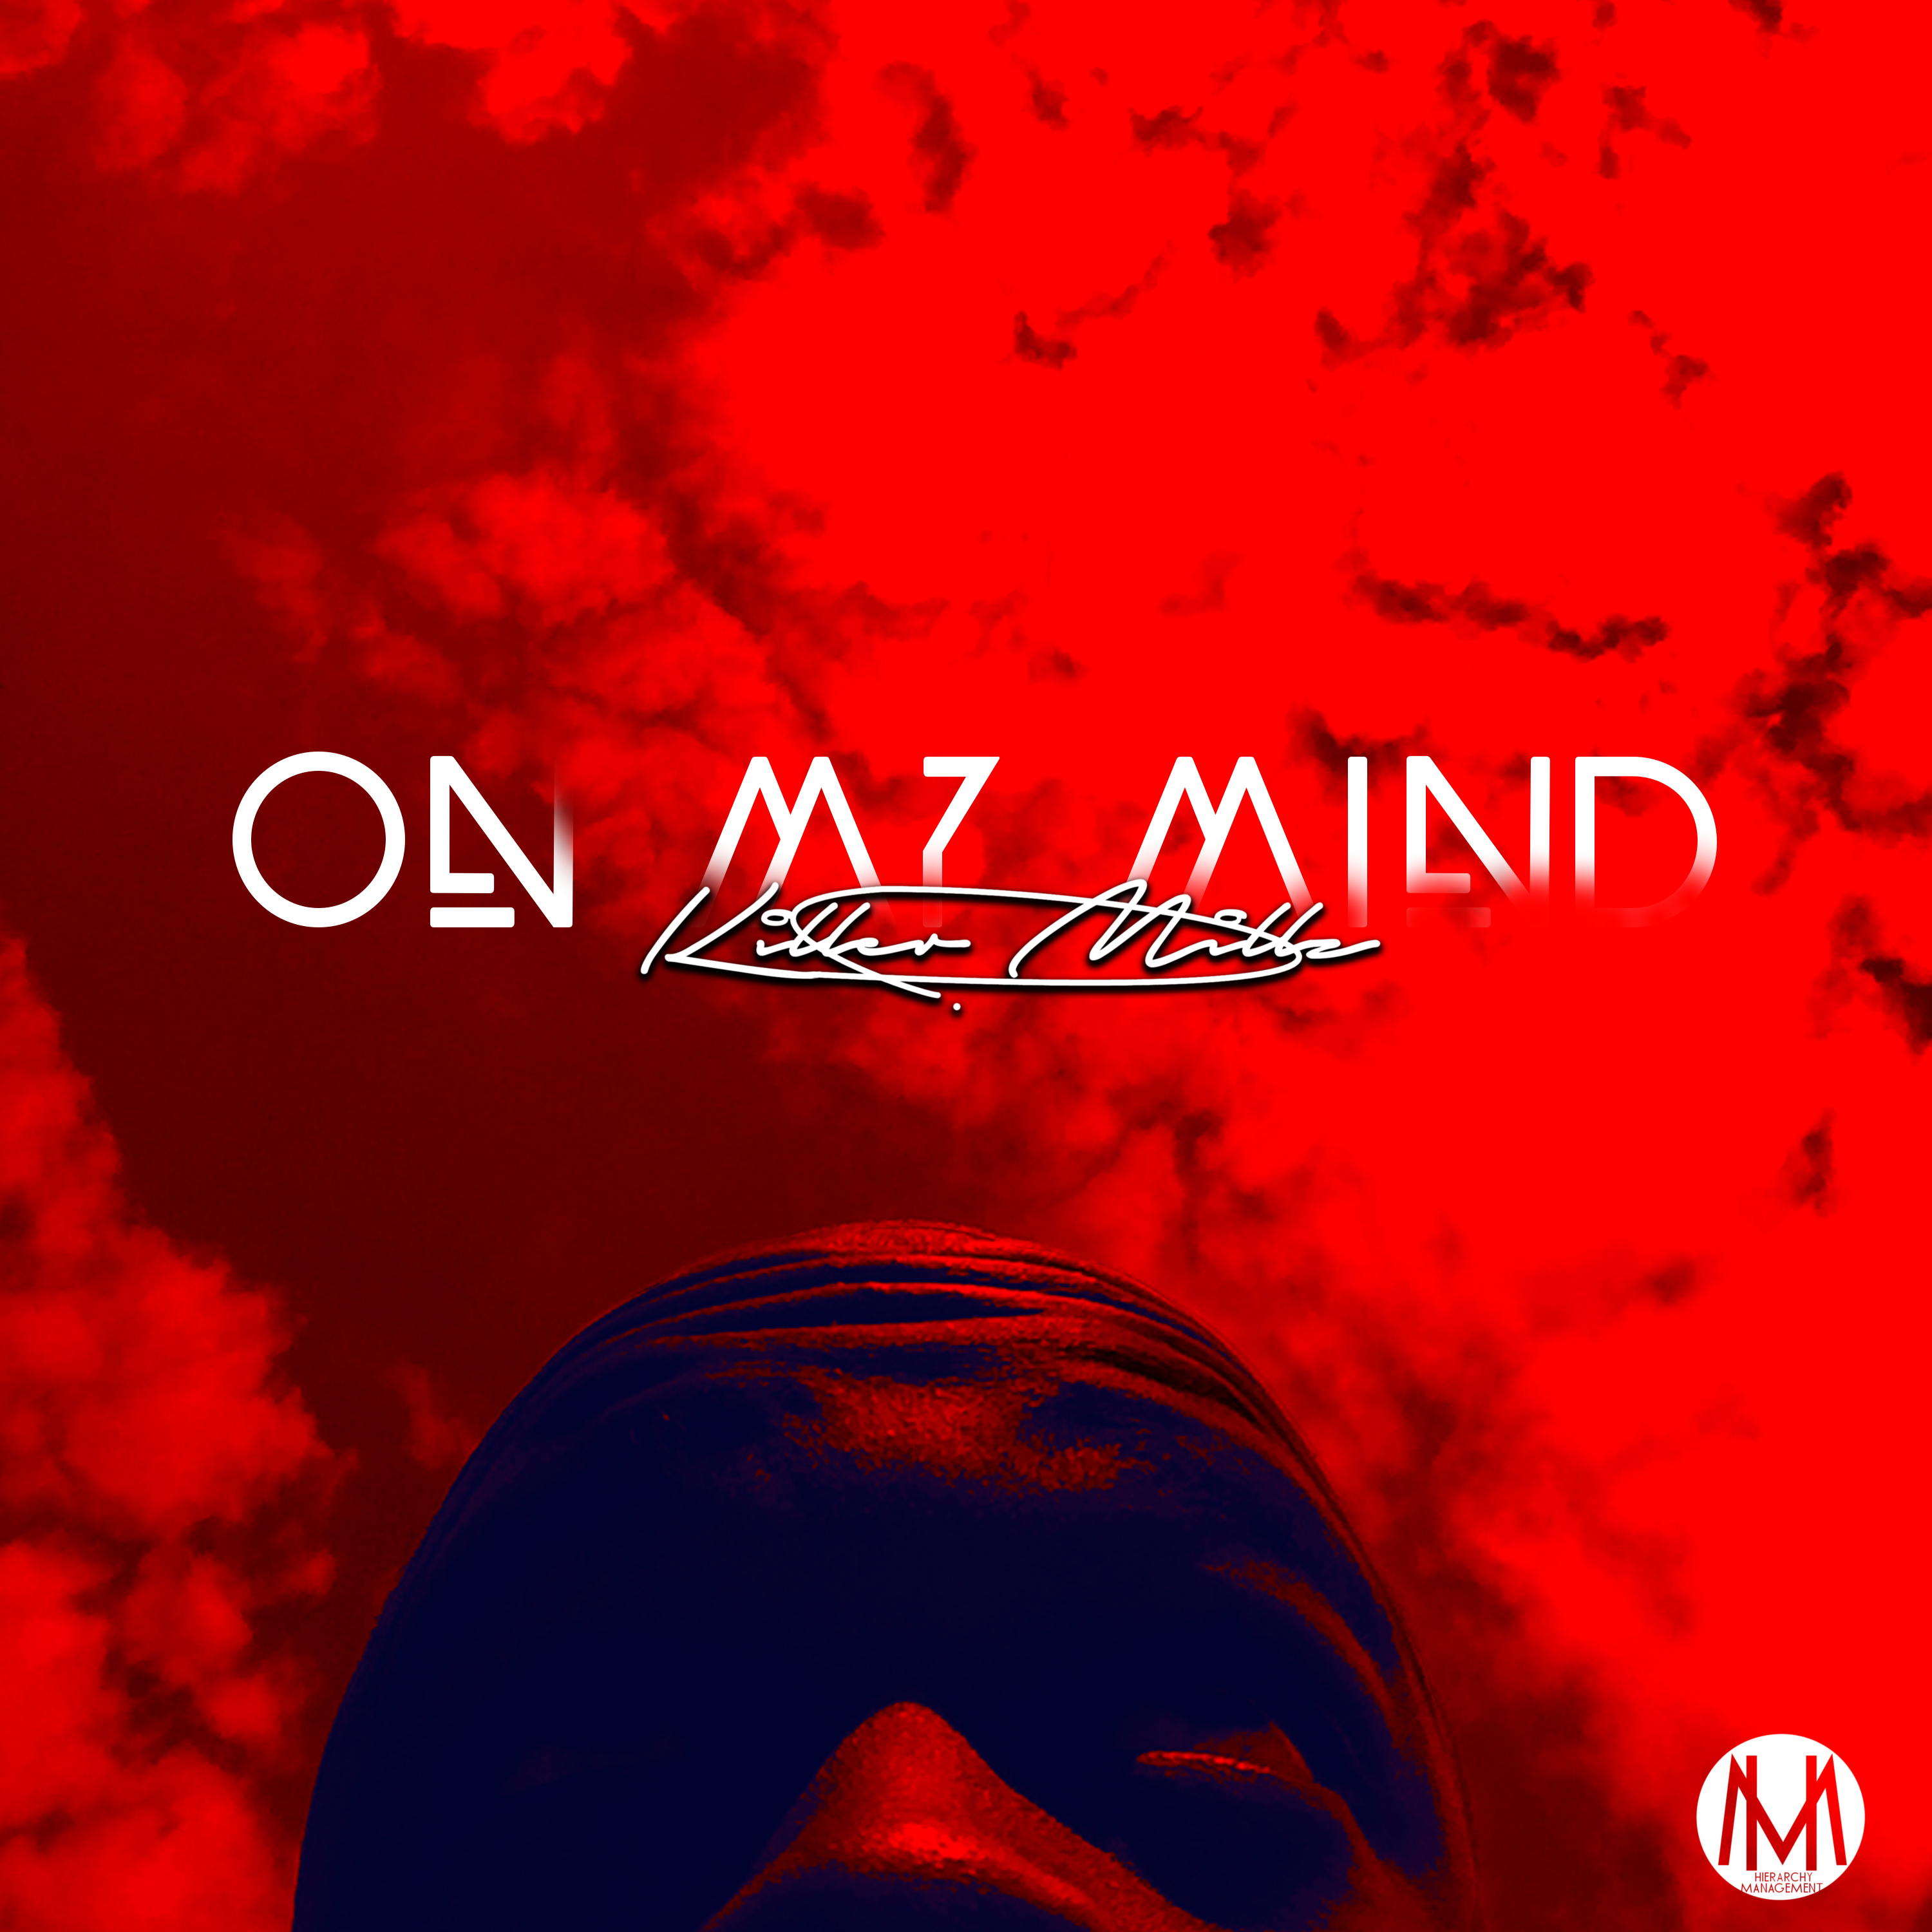 Listen Killer Millz' 'On My Mind' Joint onmymind red and navy